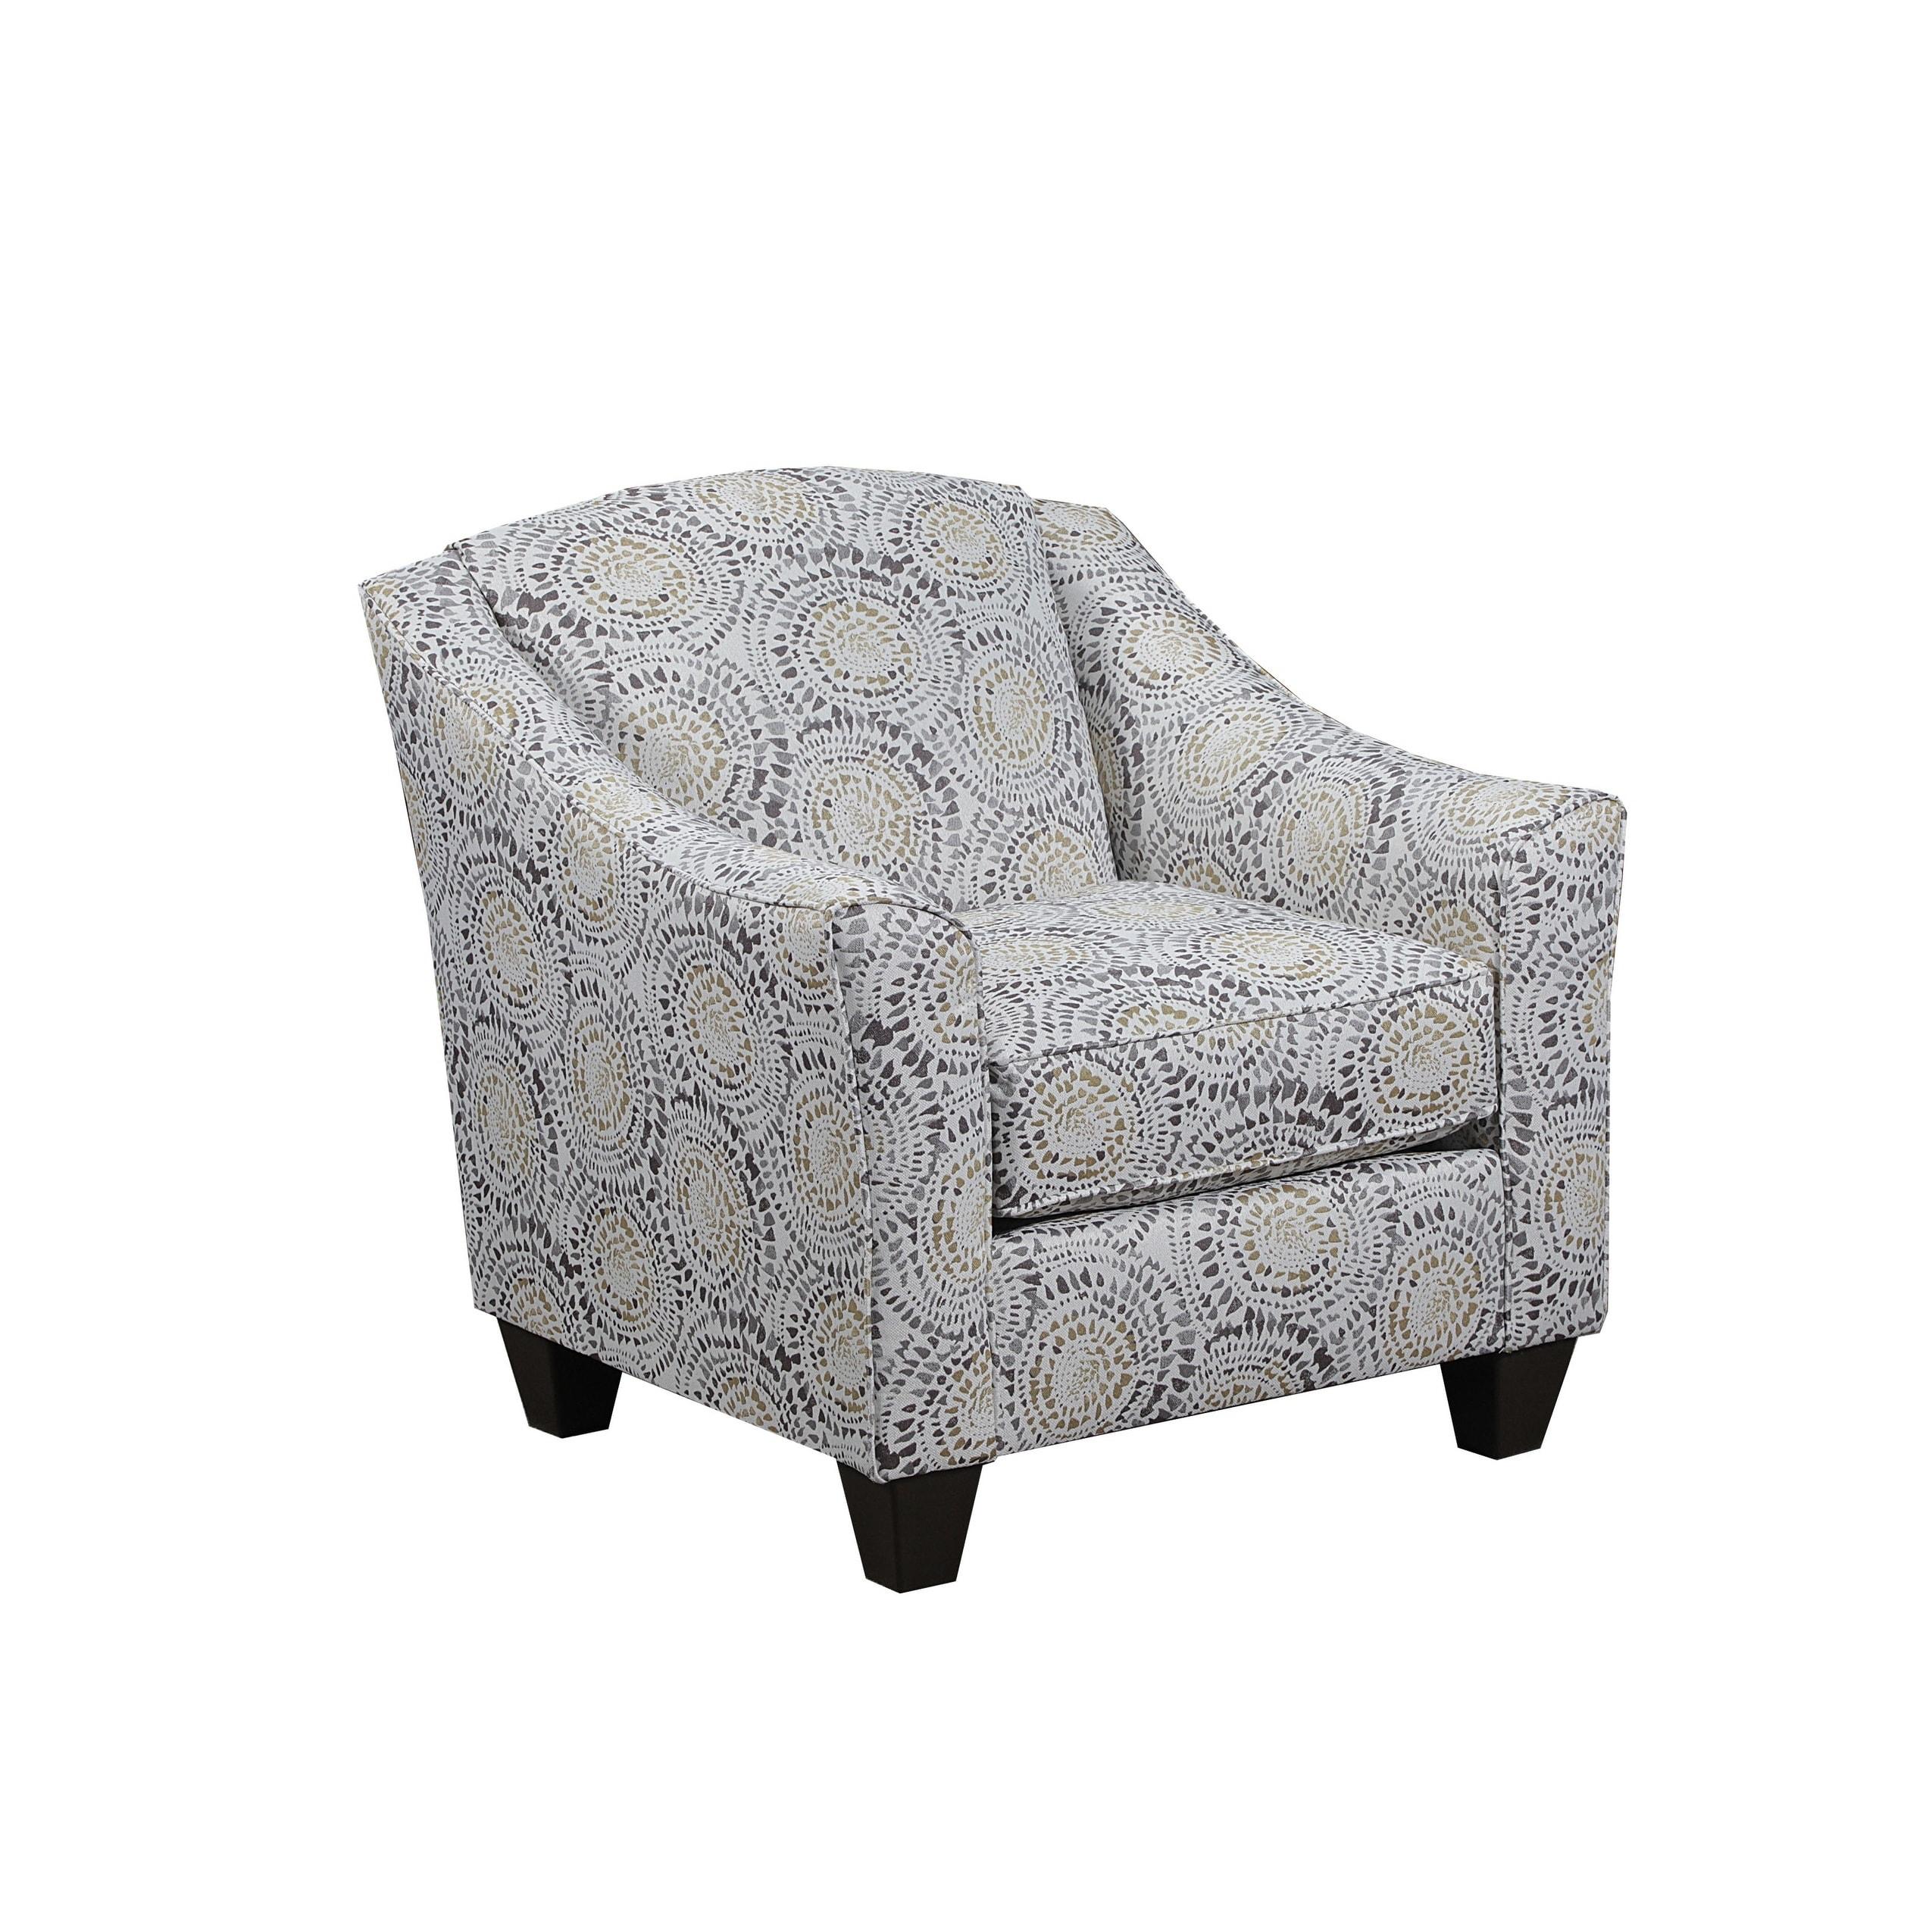 Shop Simmons Upholstery Mosaic Antique Accent Chair Overstock 21865643,Best Places To Travel In November 2020 Usa